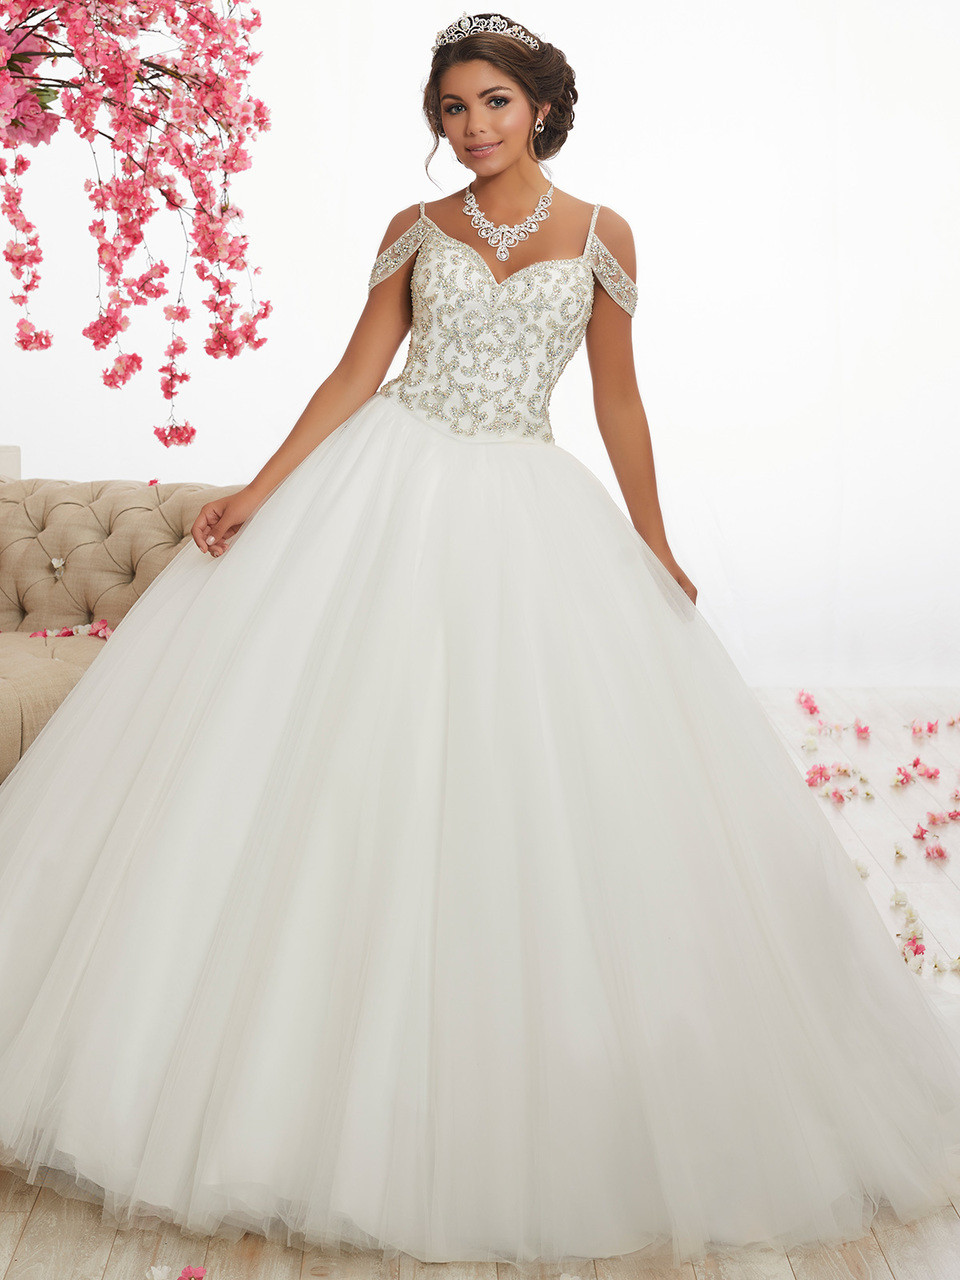 64afee3c57f white cold shoulder quinceanera dress with beaded bodice and traps that  ends in a full plain